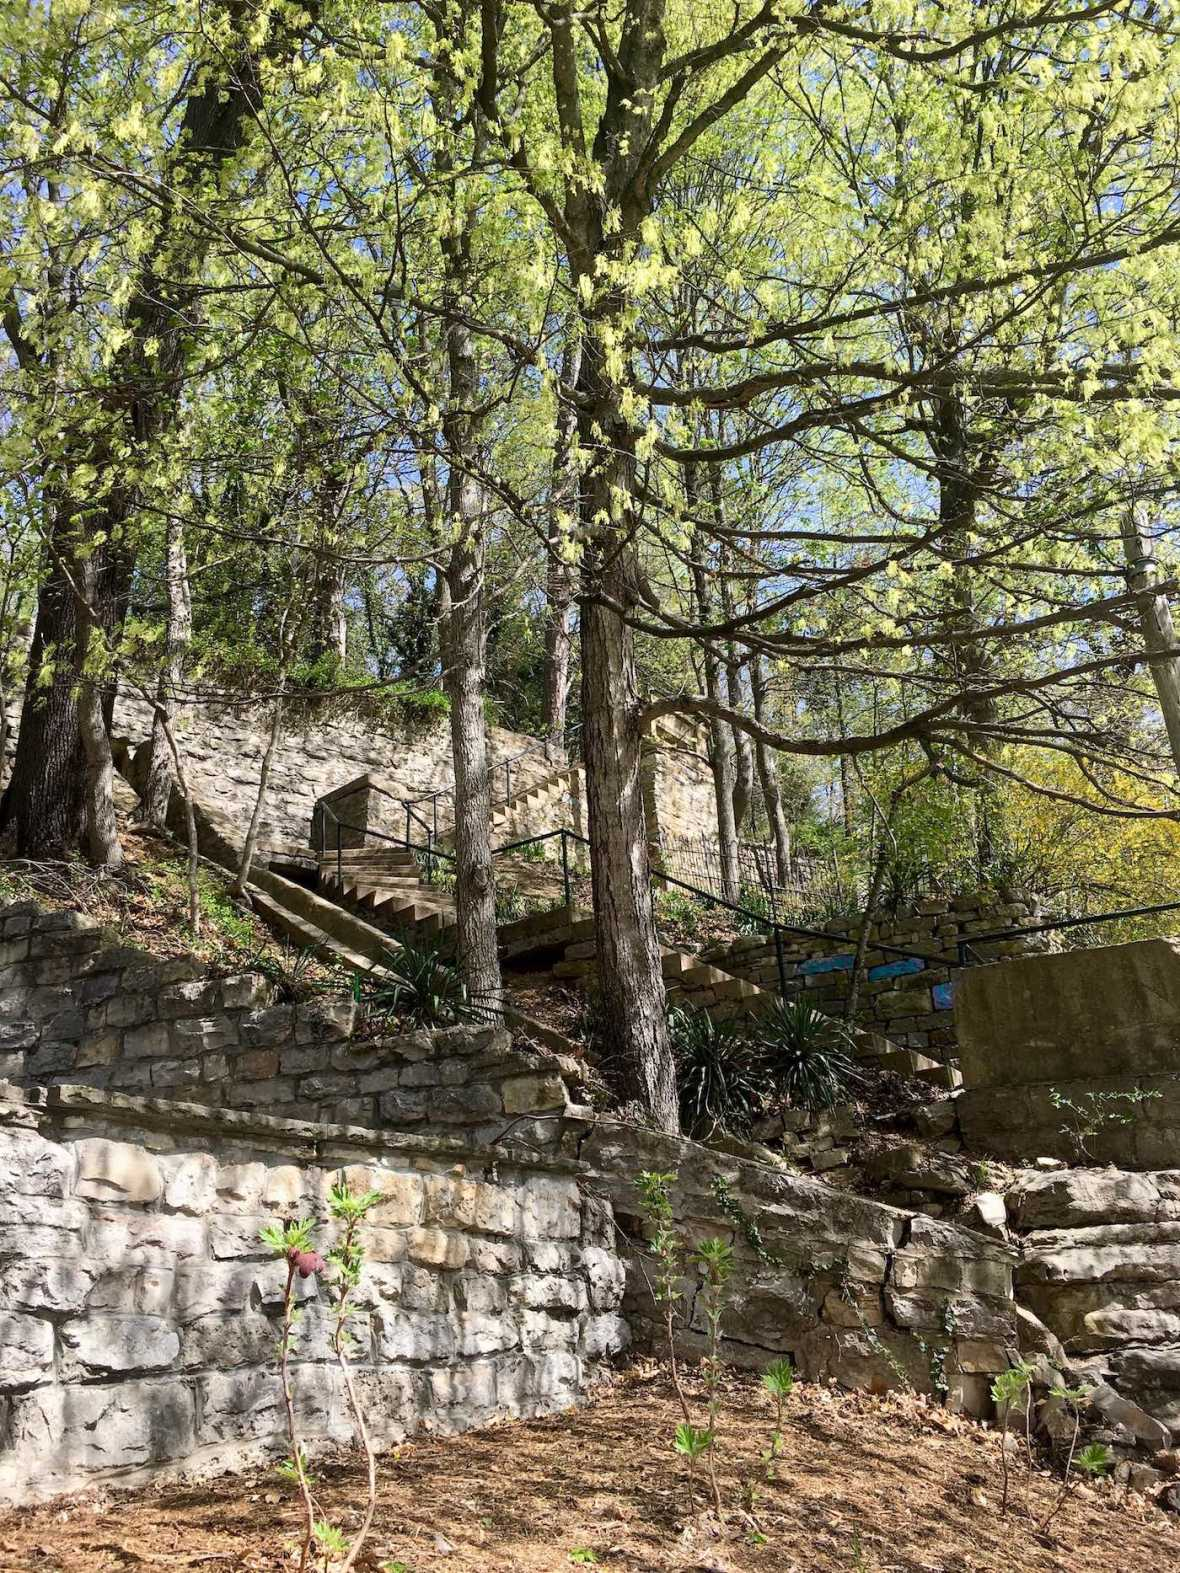 Stone stairway to leading wooded path in historic downtown Eureka Springs, Arkansas